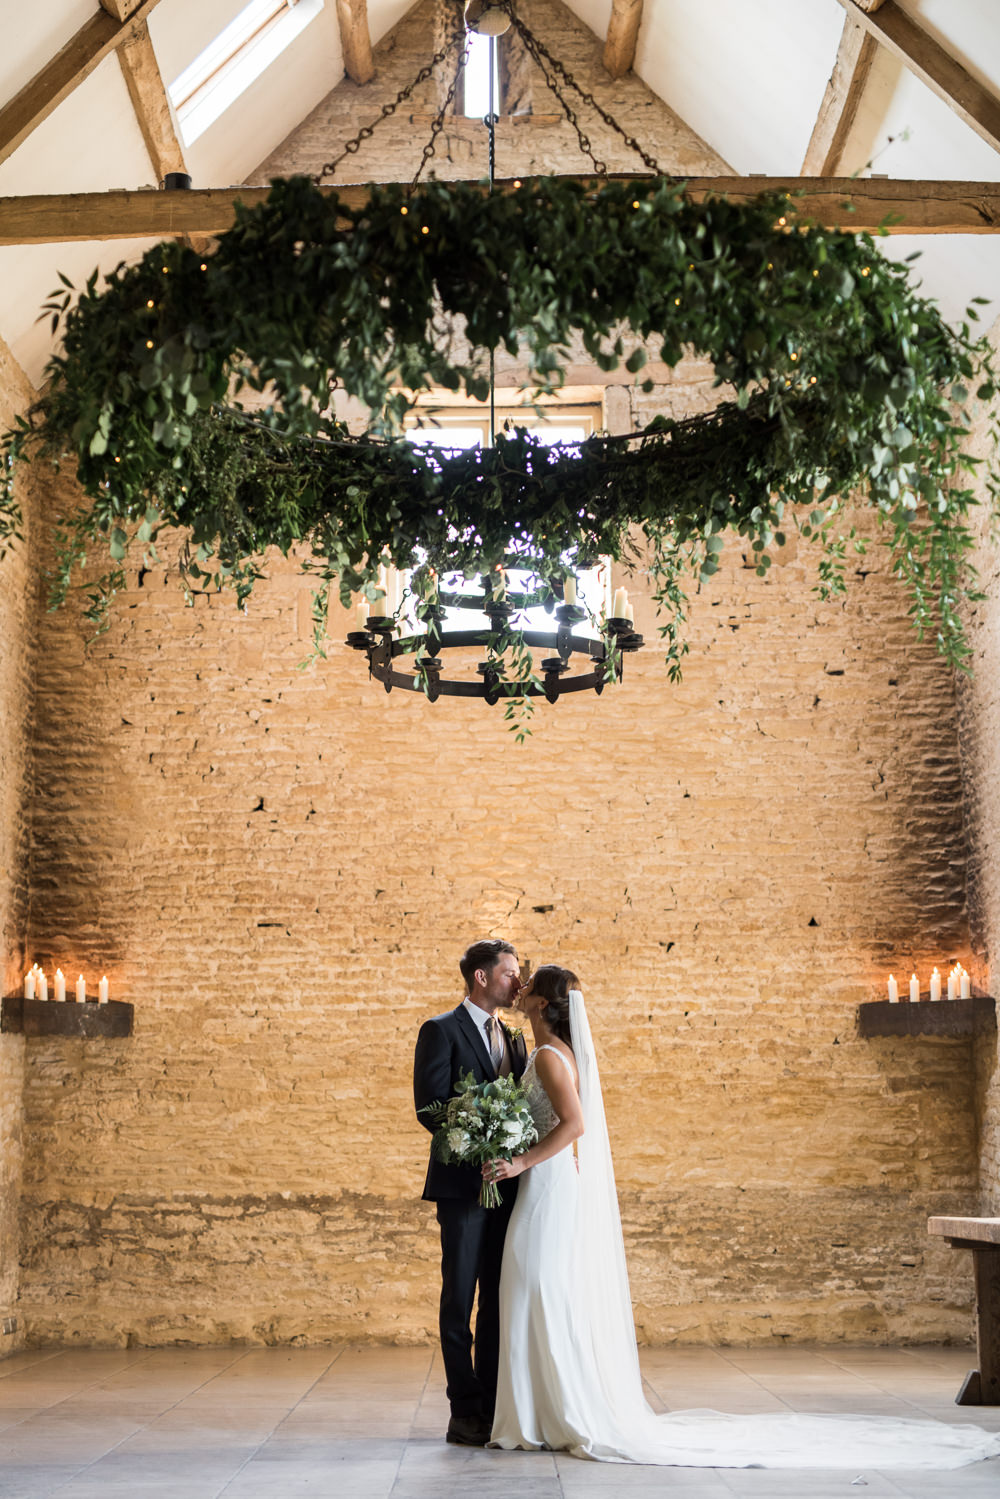 Bride Bridal Embellished Sequin Boat Neck Sleeveless Veil Bouquet Greenery White Reiss Waistcoat Groom Navy Greenery Chandelier Candles Elegant Chic Modern Wedding Kayleigh Pope Photography